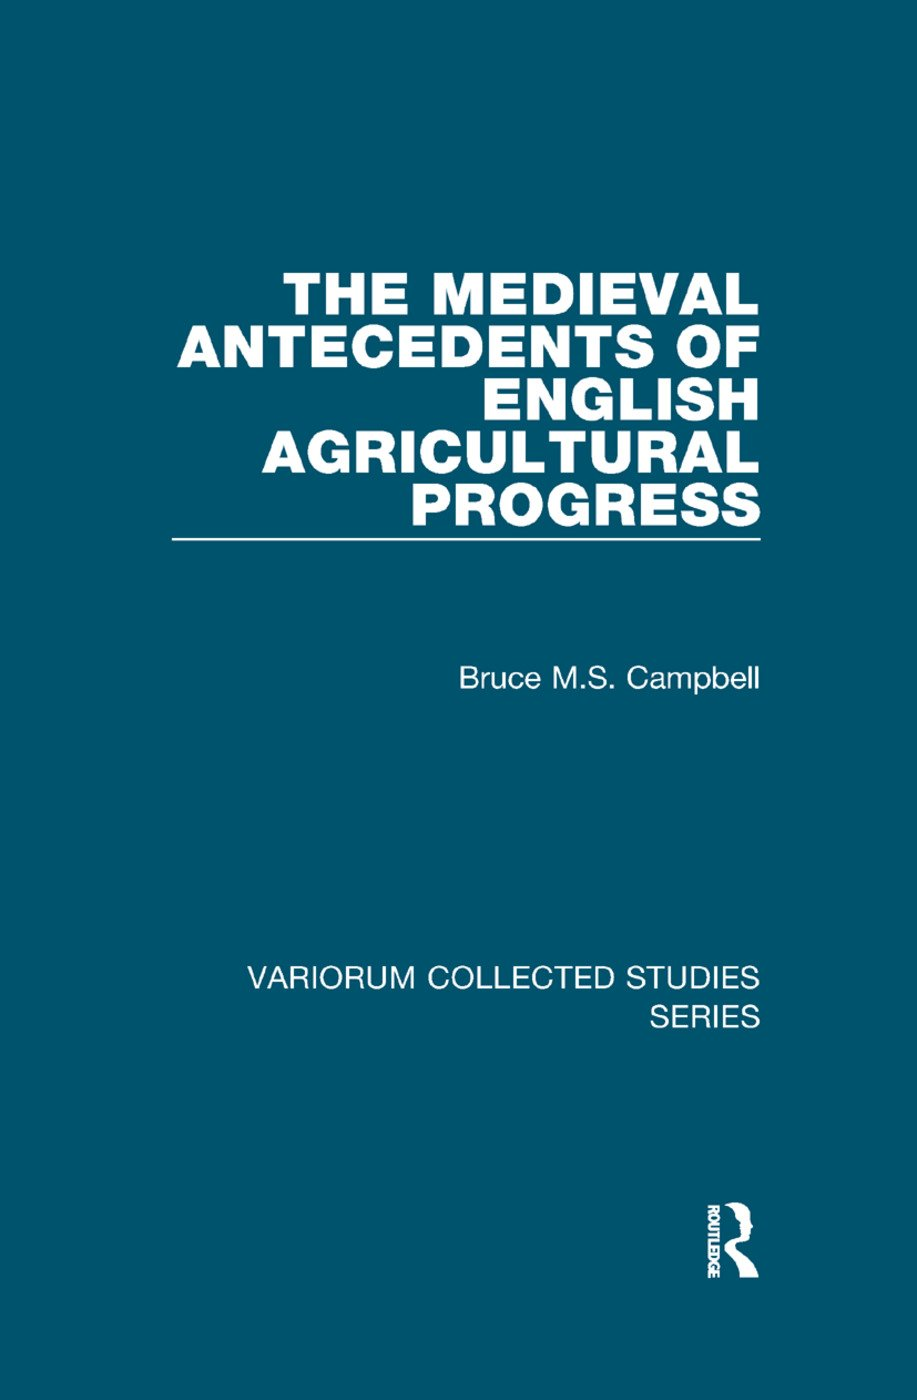 The Medieval Antecedents of English Agricultural Progress book cover